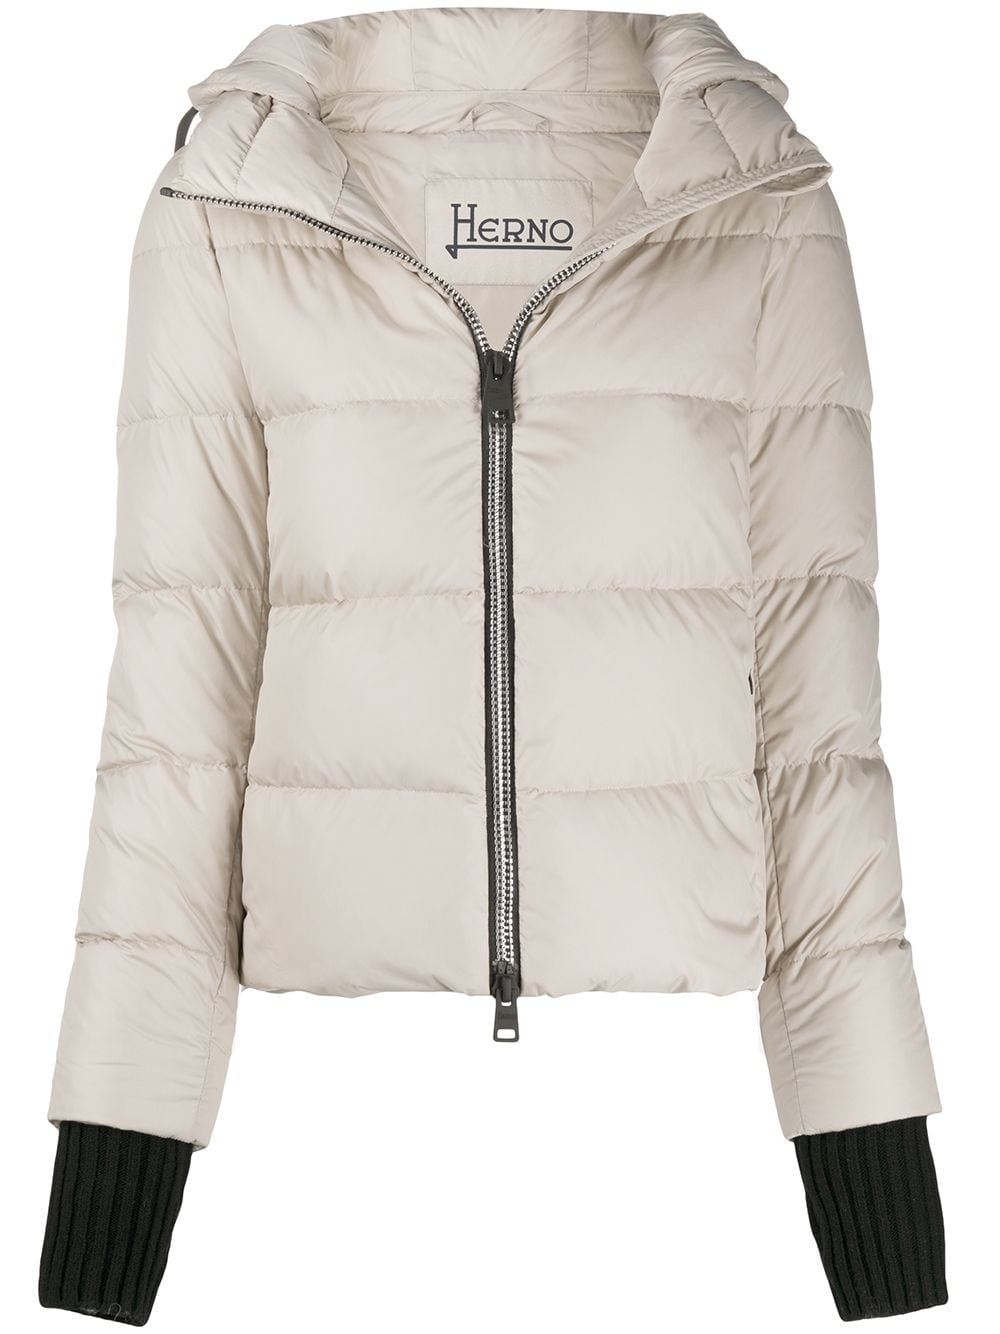 down jacket in putty-colored goose with black detachable gloves HERNO |  | PI1117D-120041985